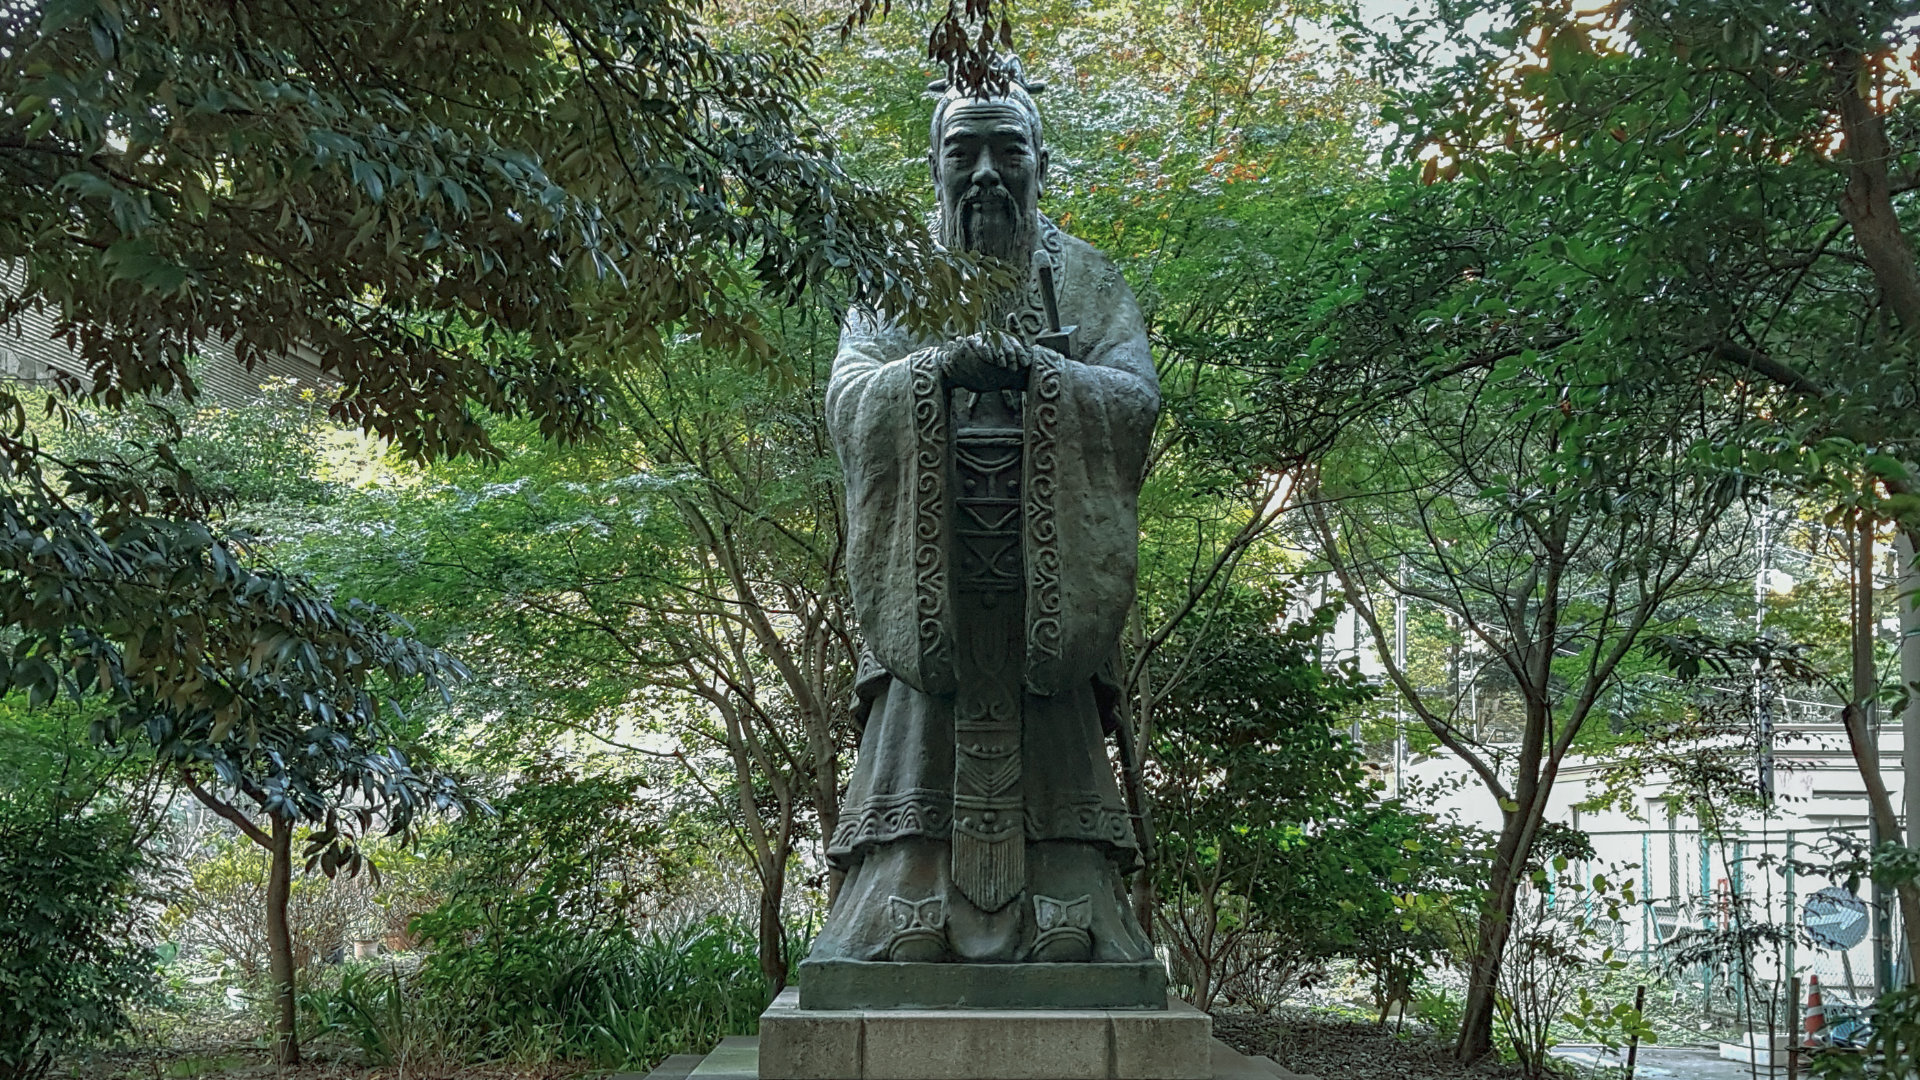 Statue of Confucius in garden